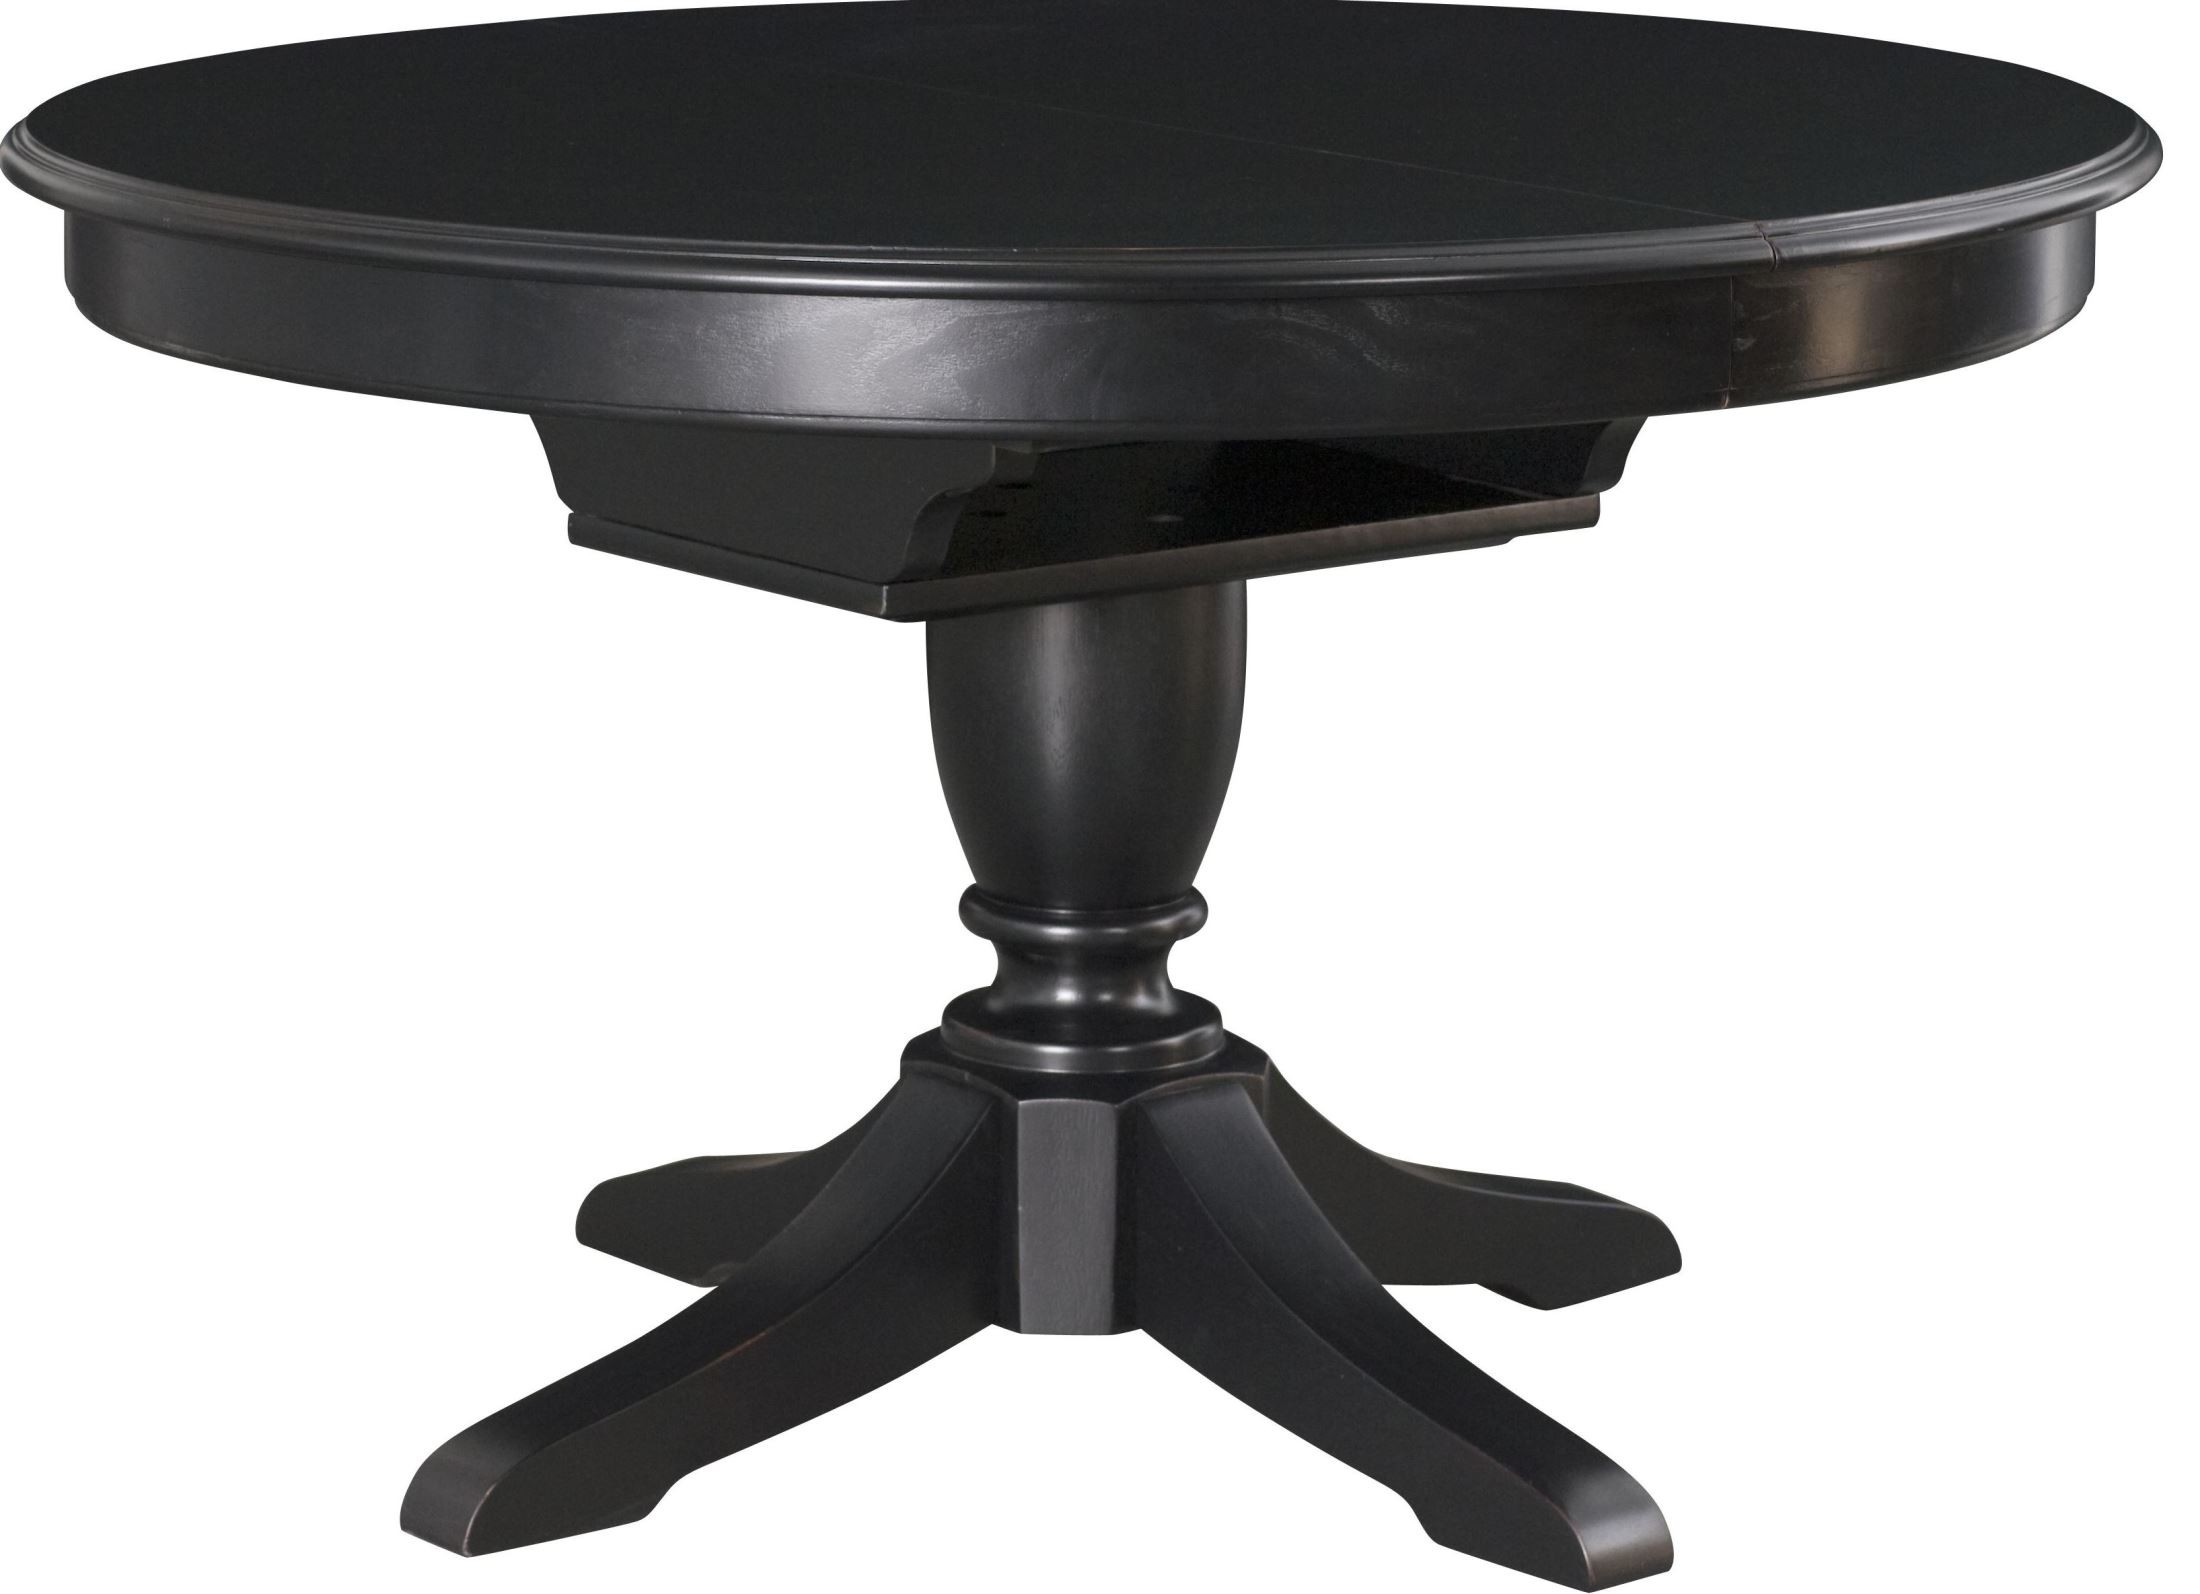 Camden Black Extendable Round Dining Table From American Drew 919 701r Coleman Furniture